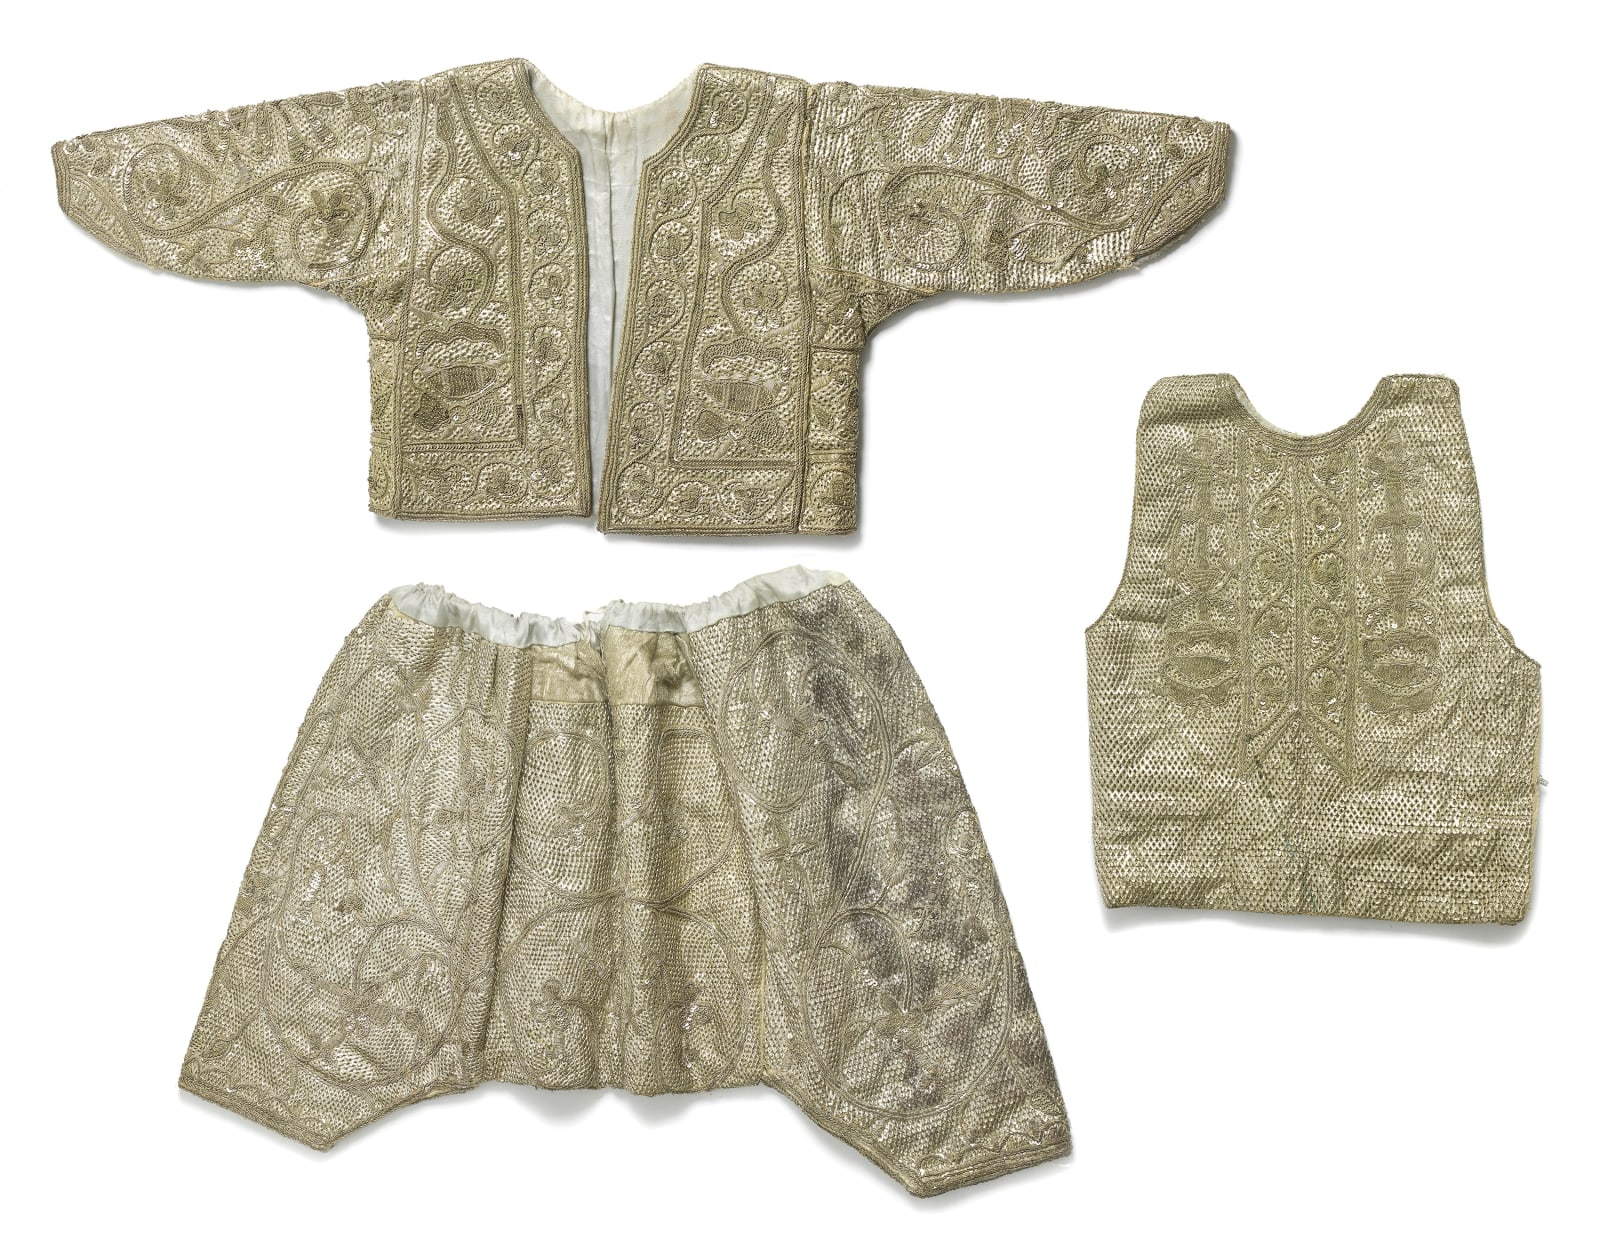 A boy's circumcision costume consisting of a jacket, short pantaloons and a vest, Tunisia, Tunis, first half of 20th century